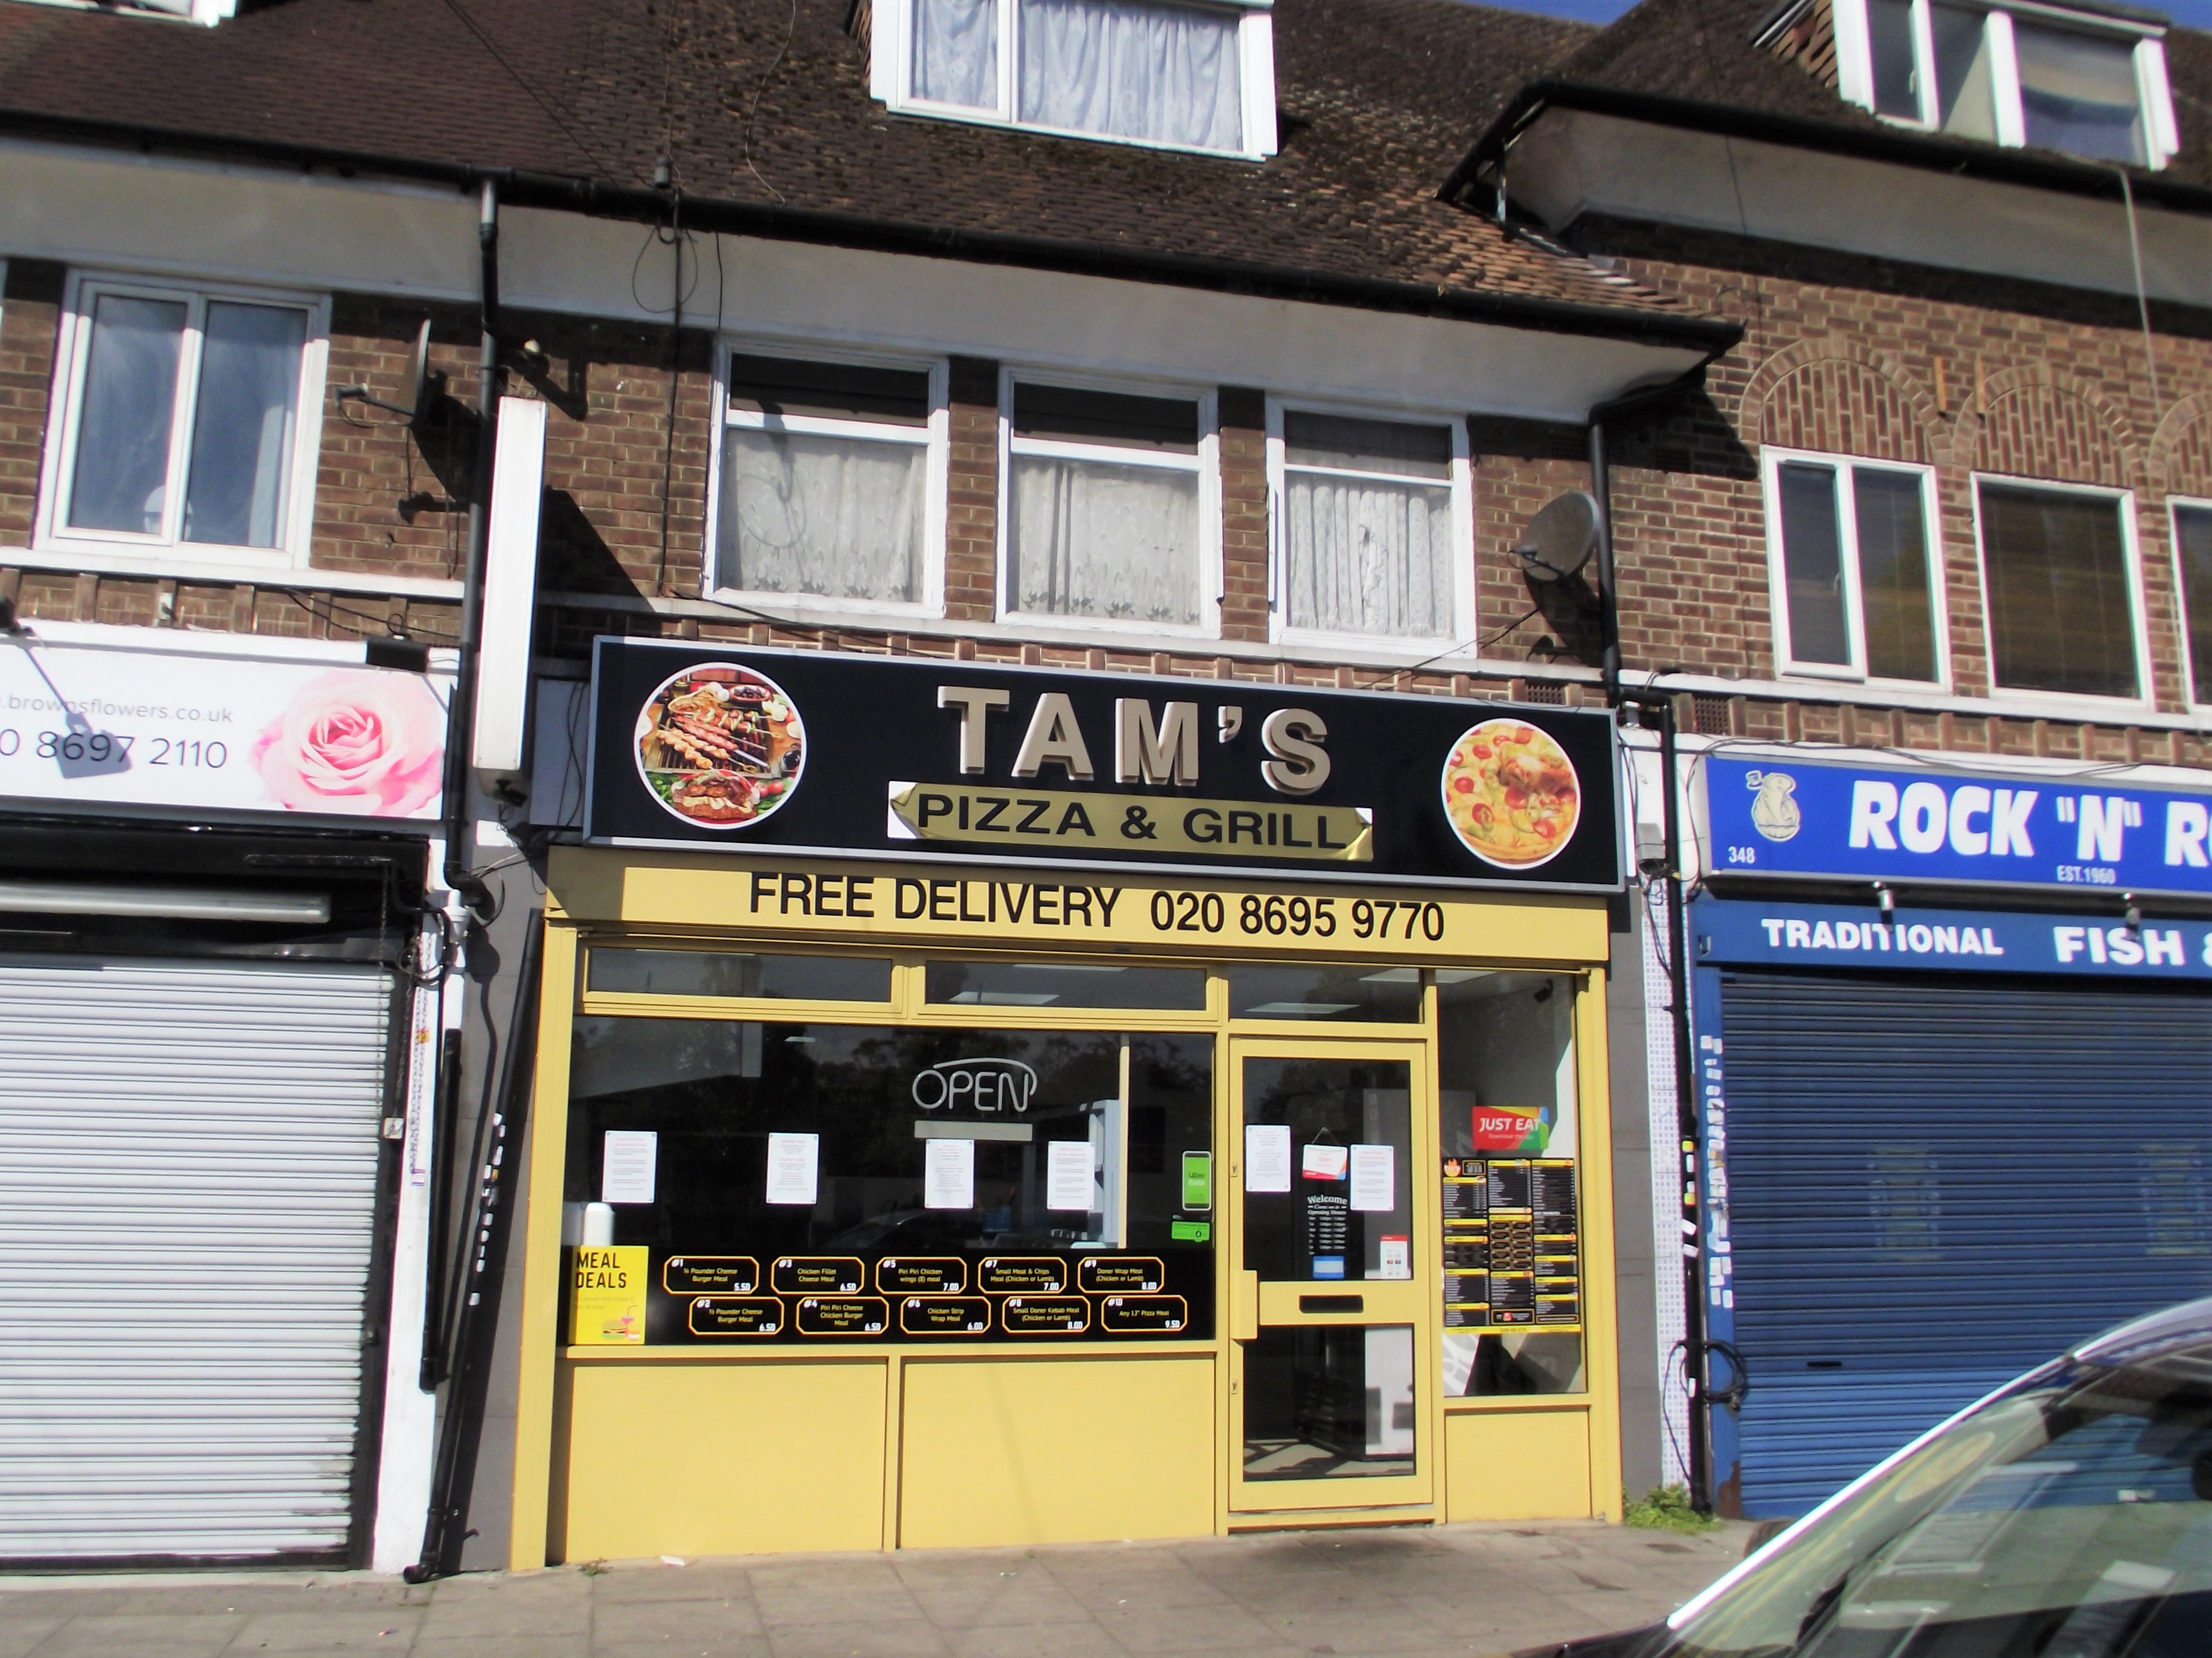 LEASE FOR SALE, Tam's Pizza & Grill, South East London. Ref.1743